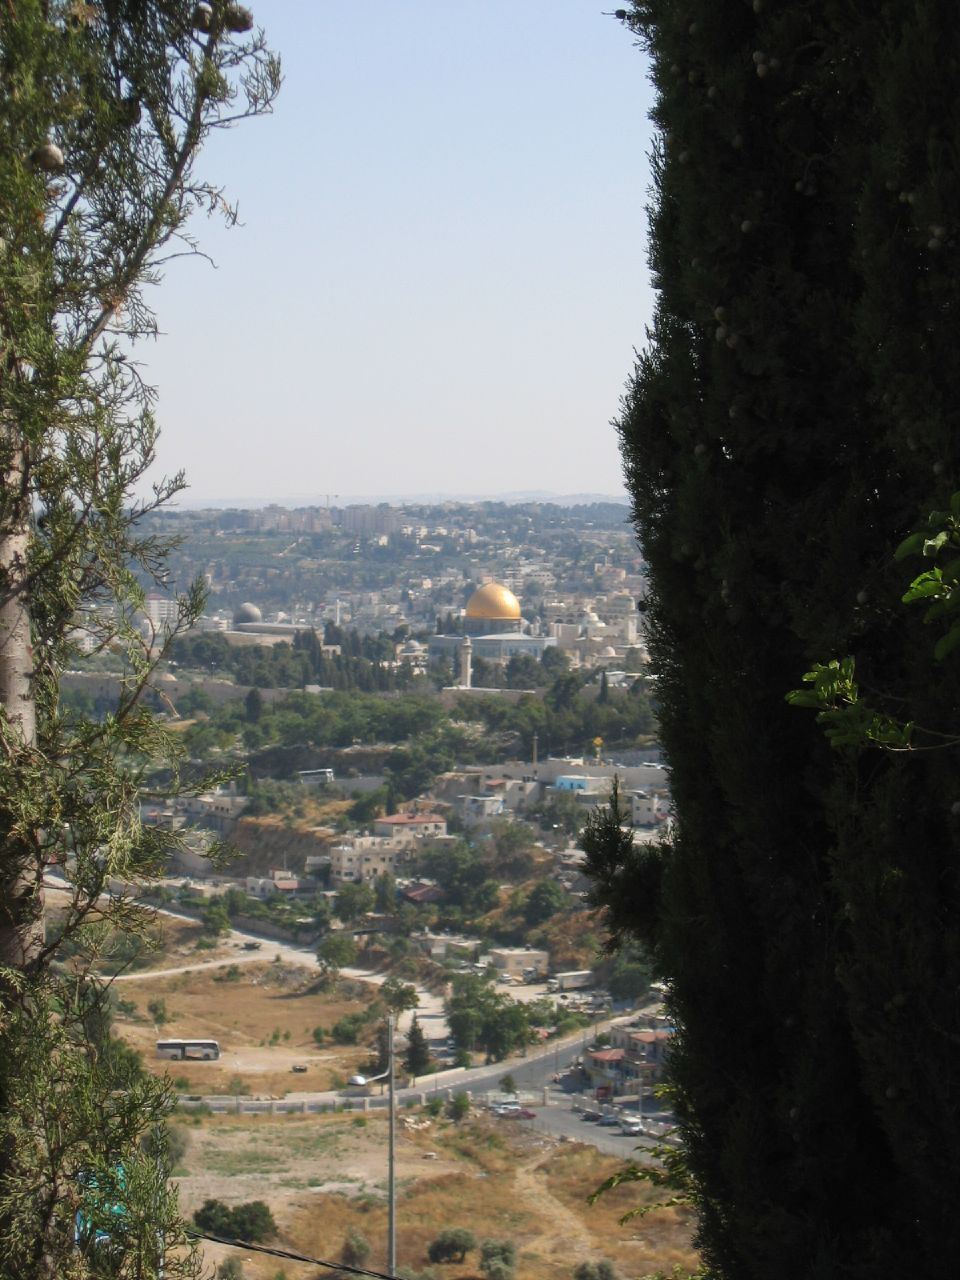 Jerusalem - القدس الشريف : Al-Aqsa Mosque and the Dome of the Rock from Wadi El-Joz